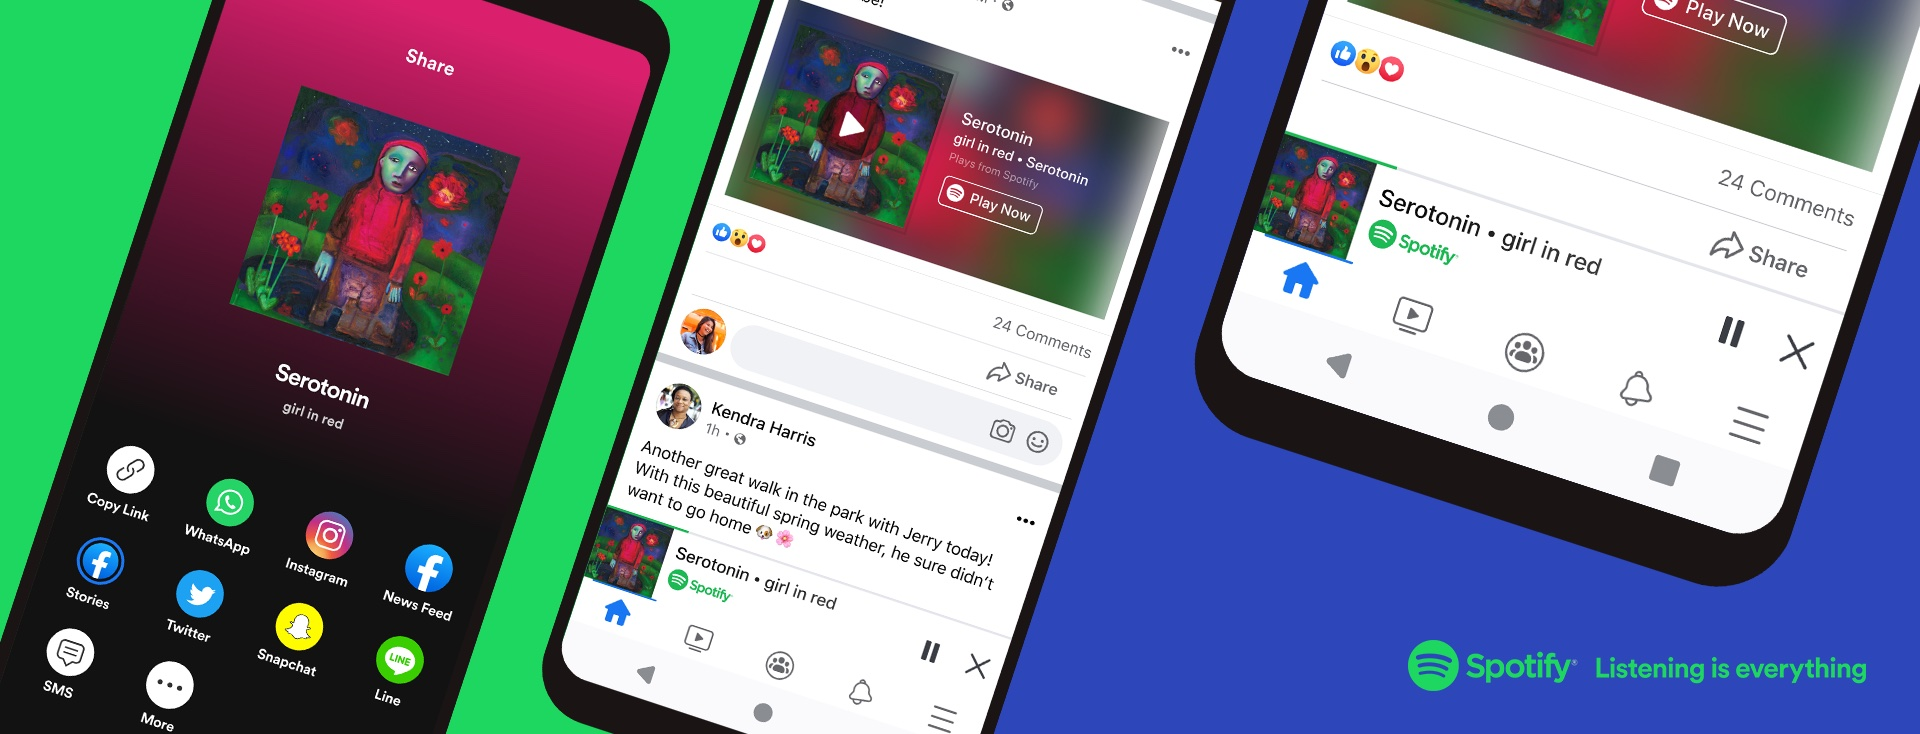 Promotional graphics from Spotify showcasing the new mini-player in Facebook's mobile app